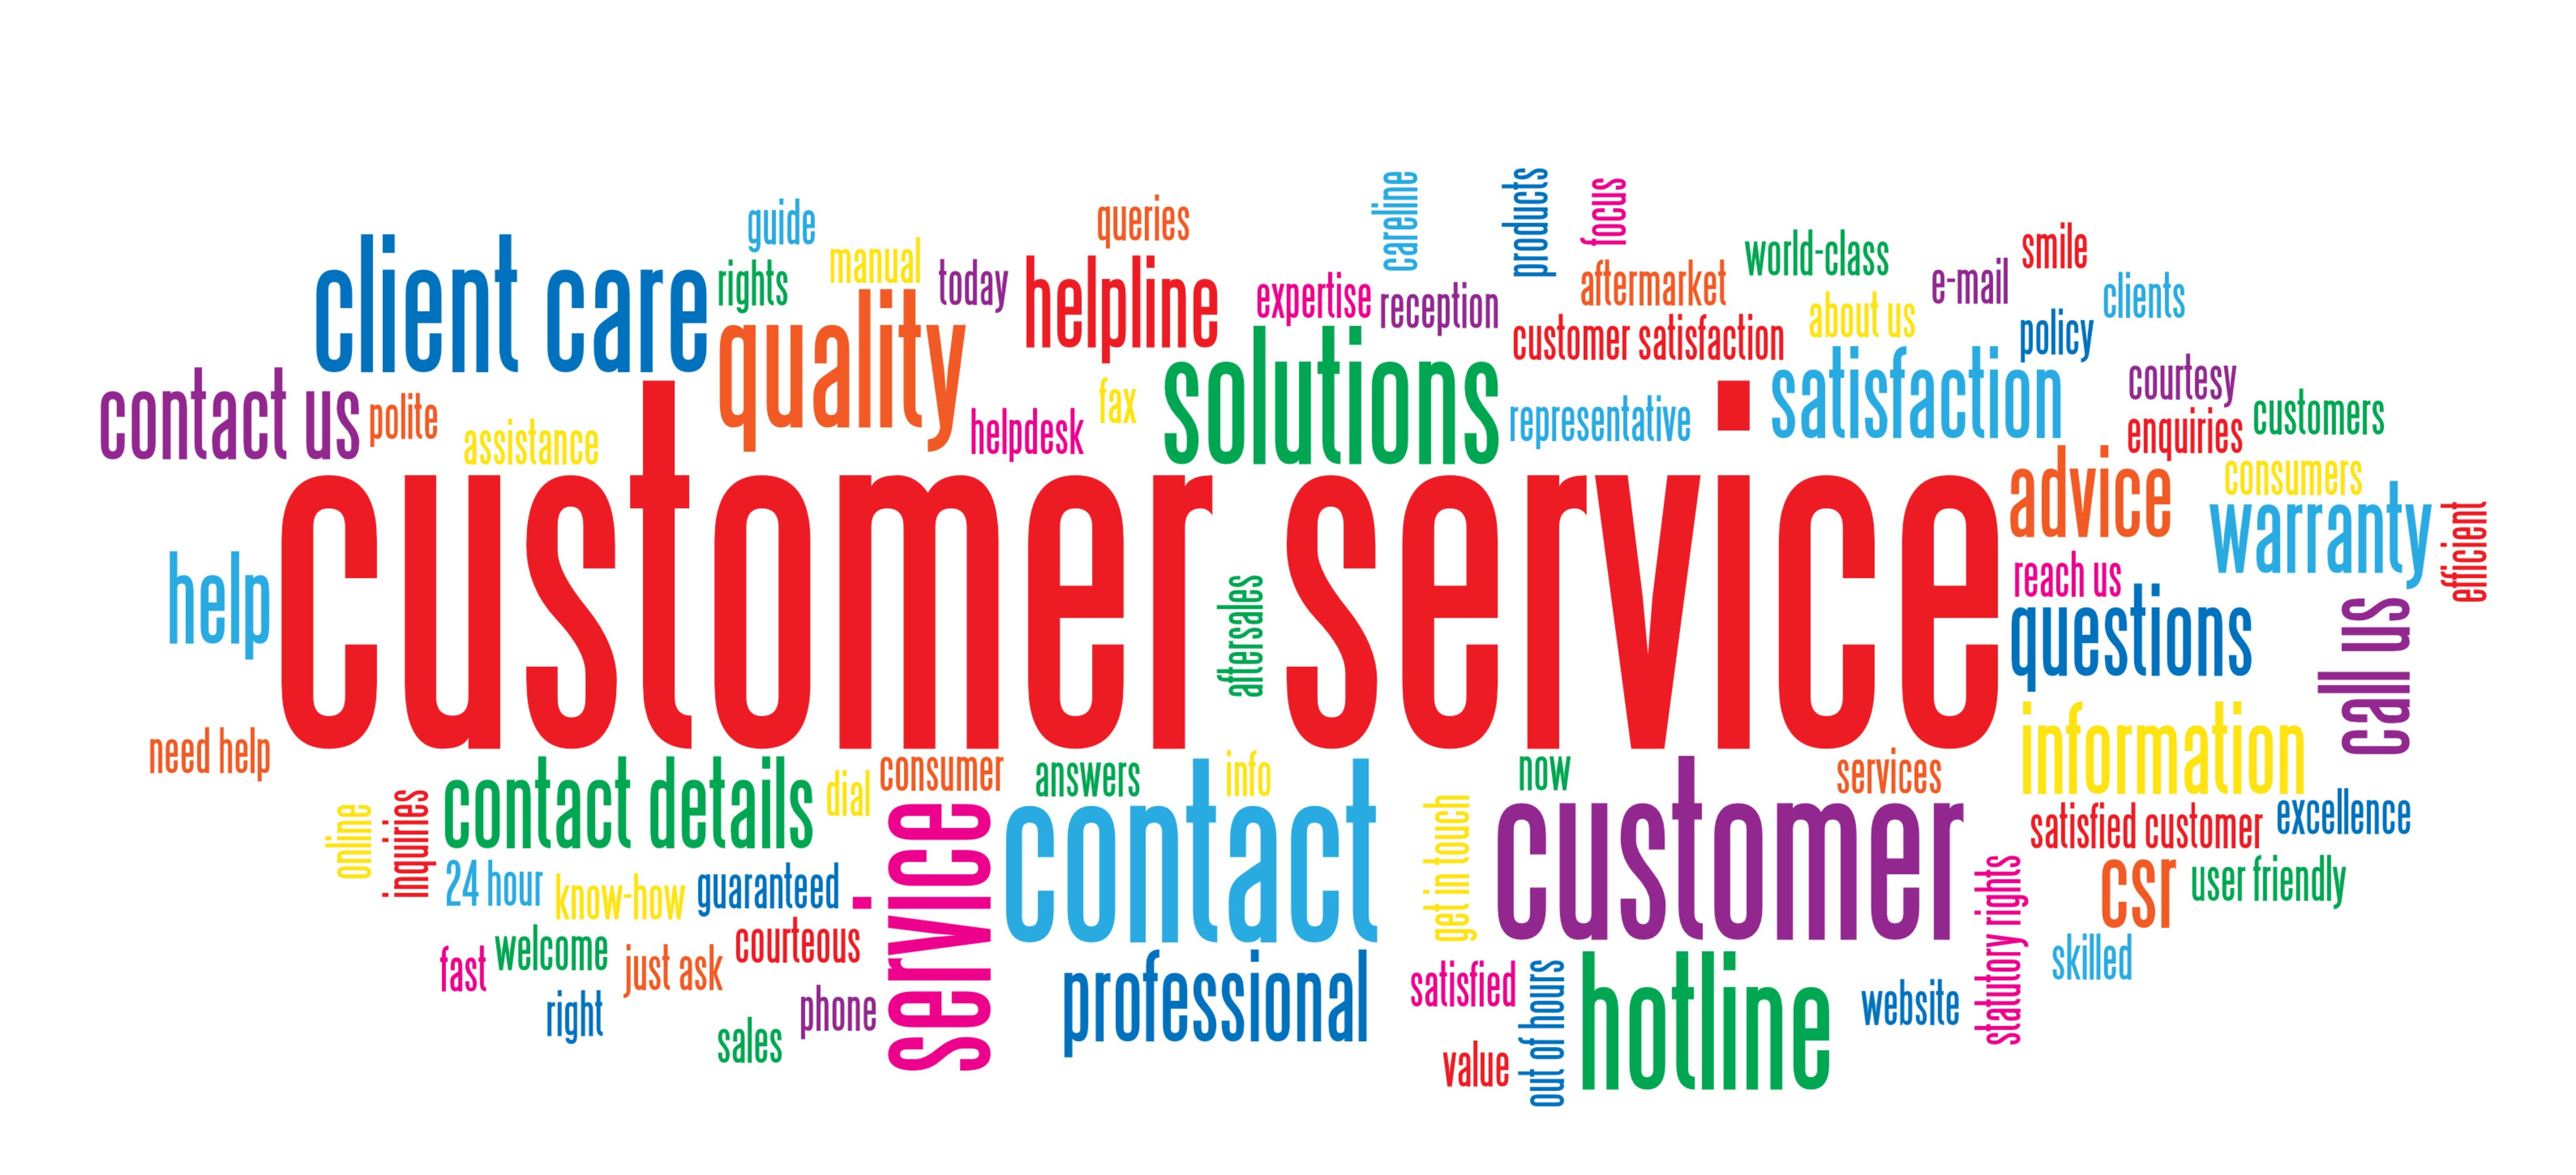 Top 8 Customer Service Software For Small Businesses